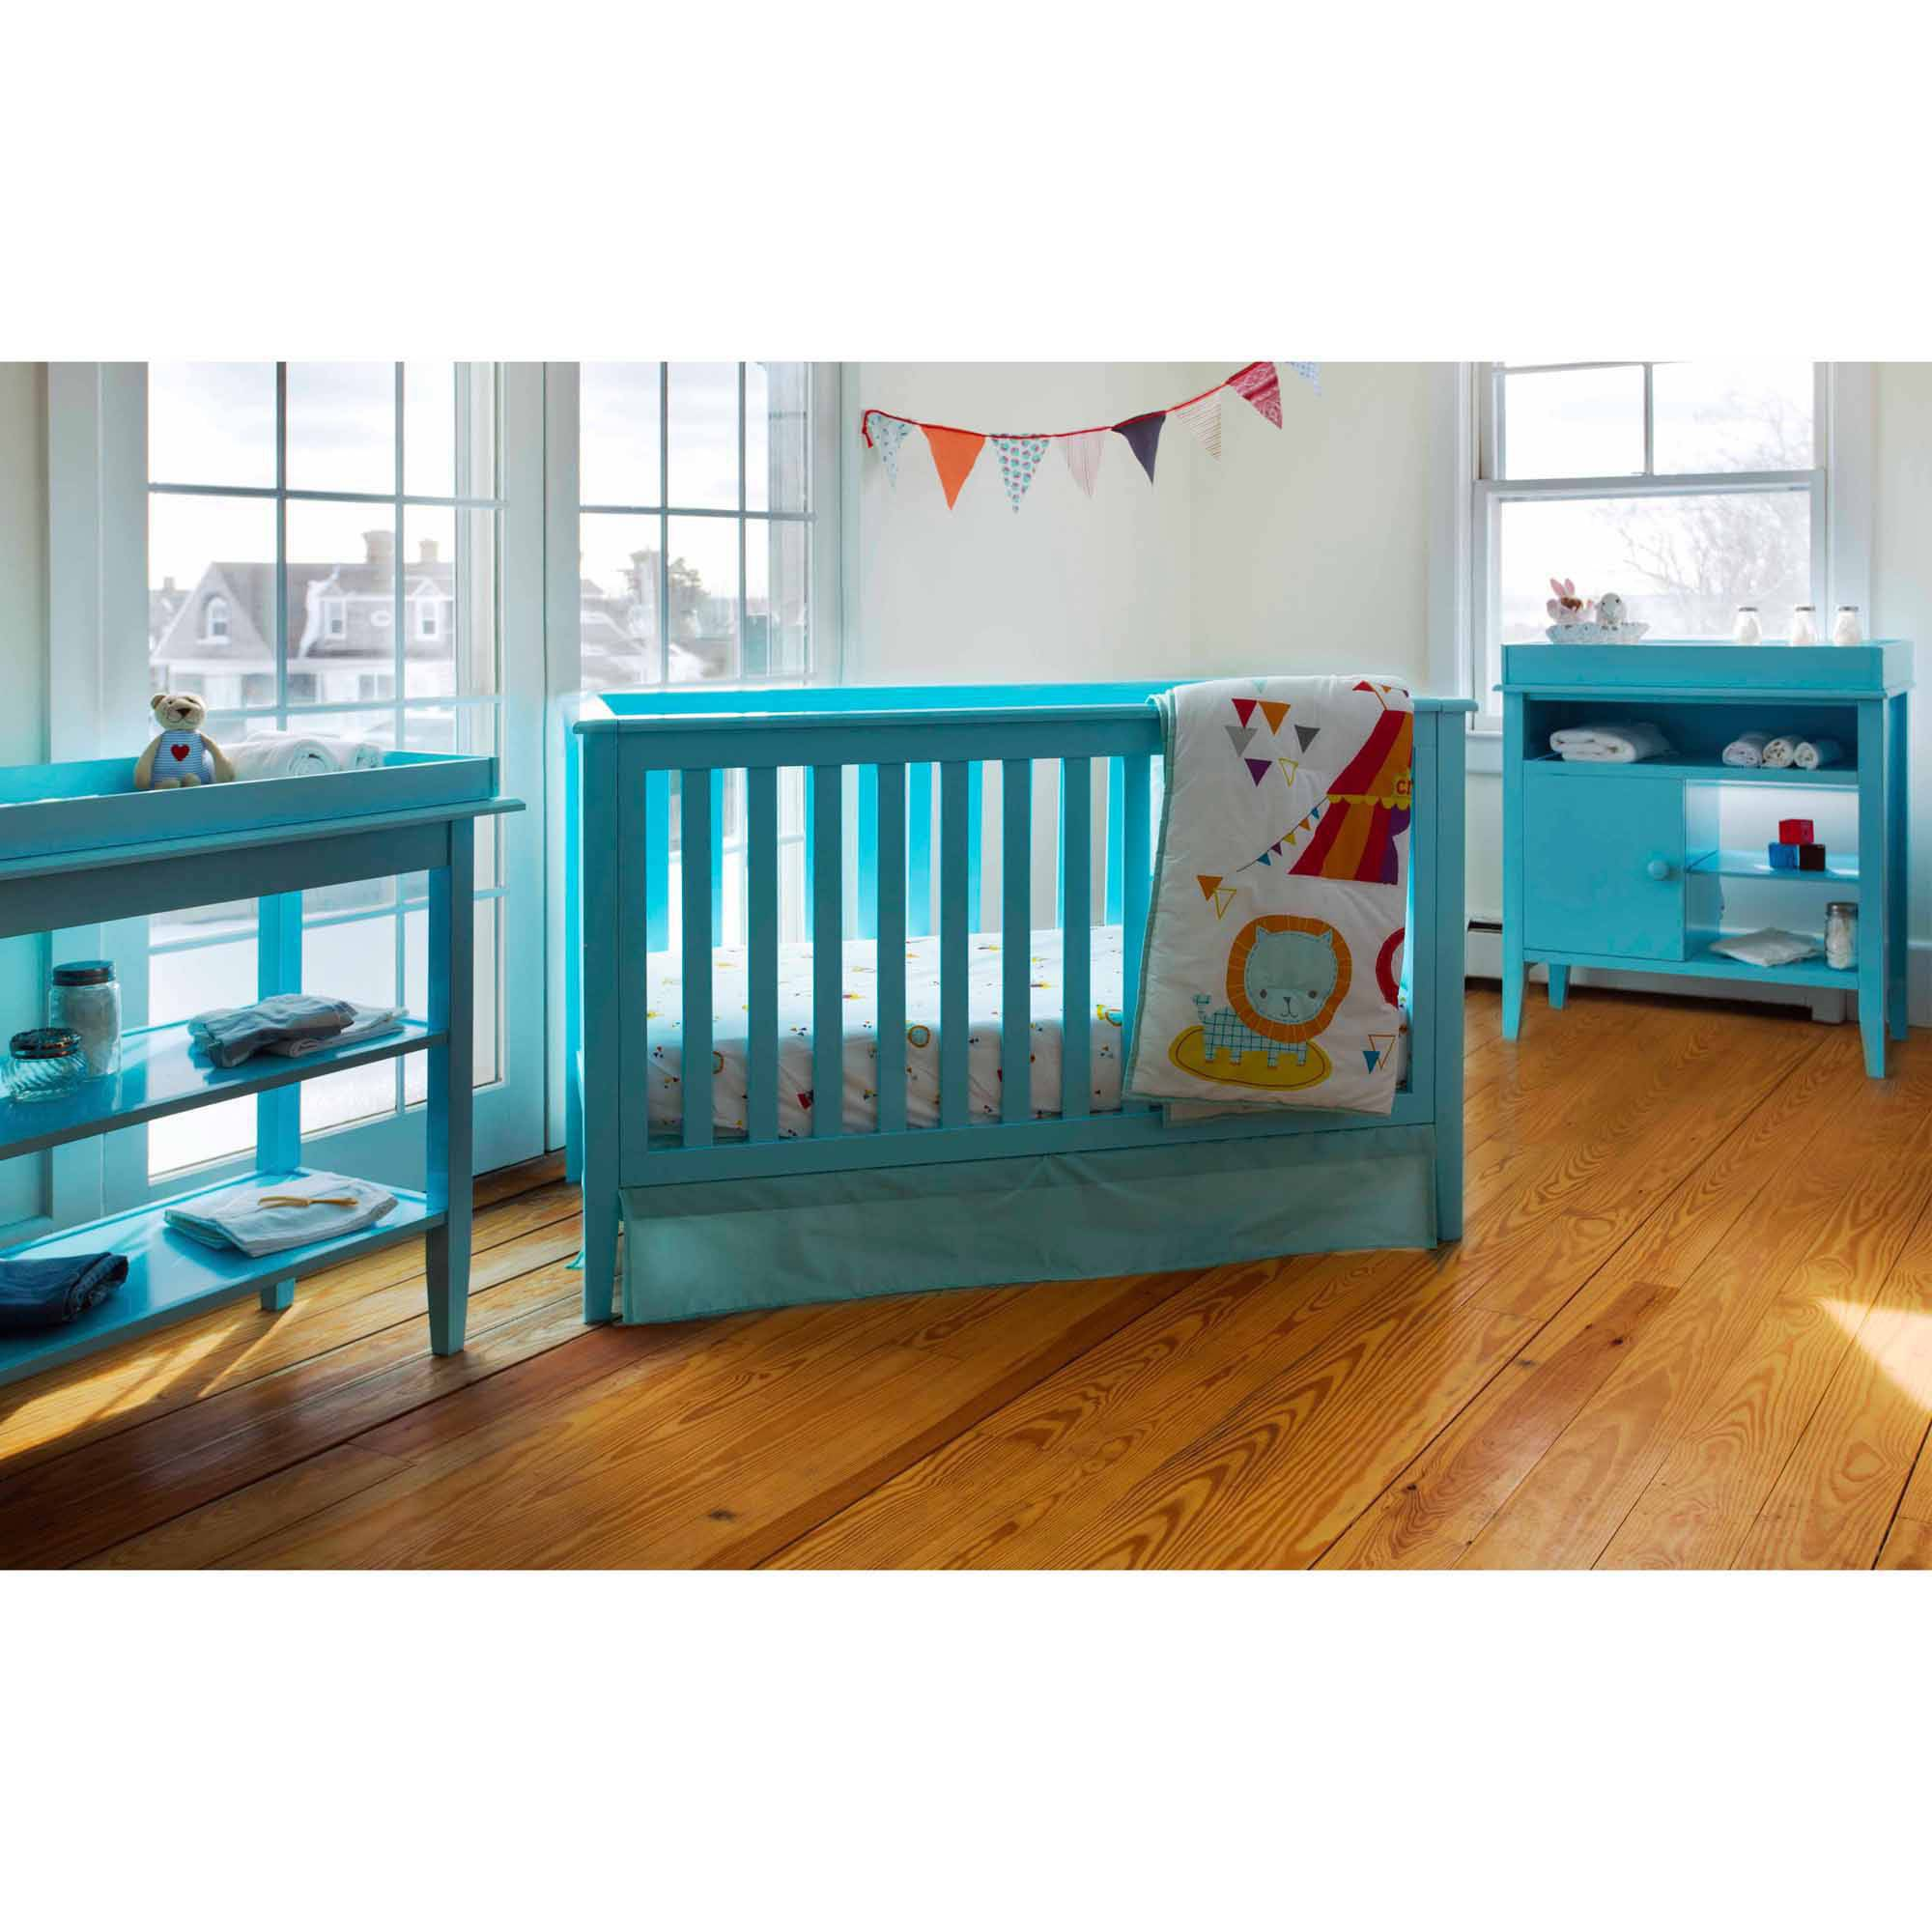 Lolly & Me Color Me 3-in-1 Convertible Crib Tiffany Blue